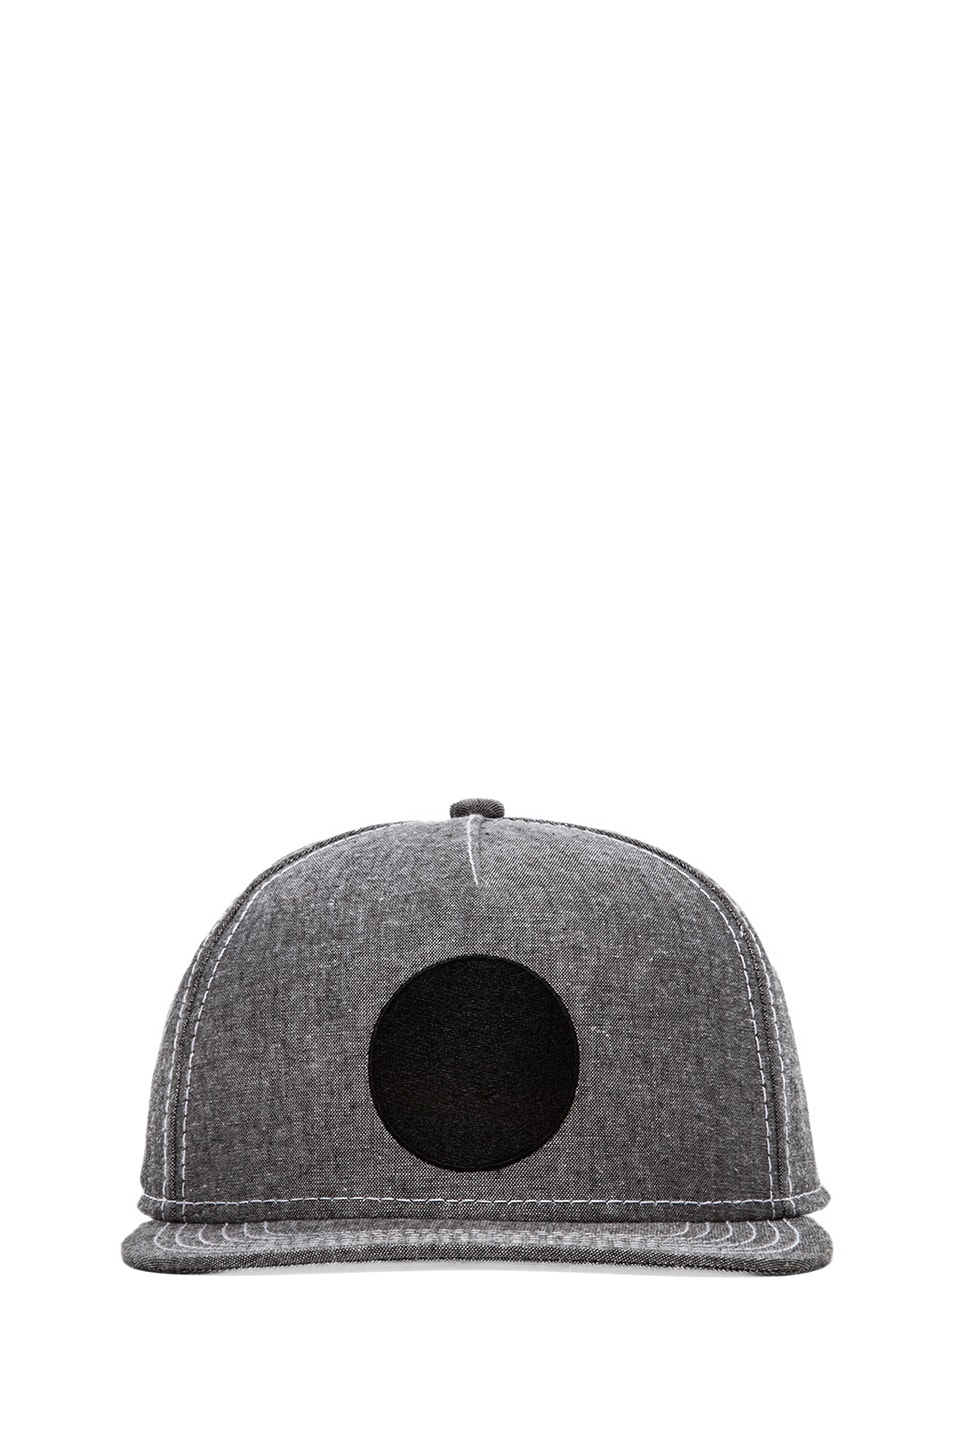 SATURDAYS NYC Stanley Oxford Hat in Black